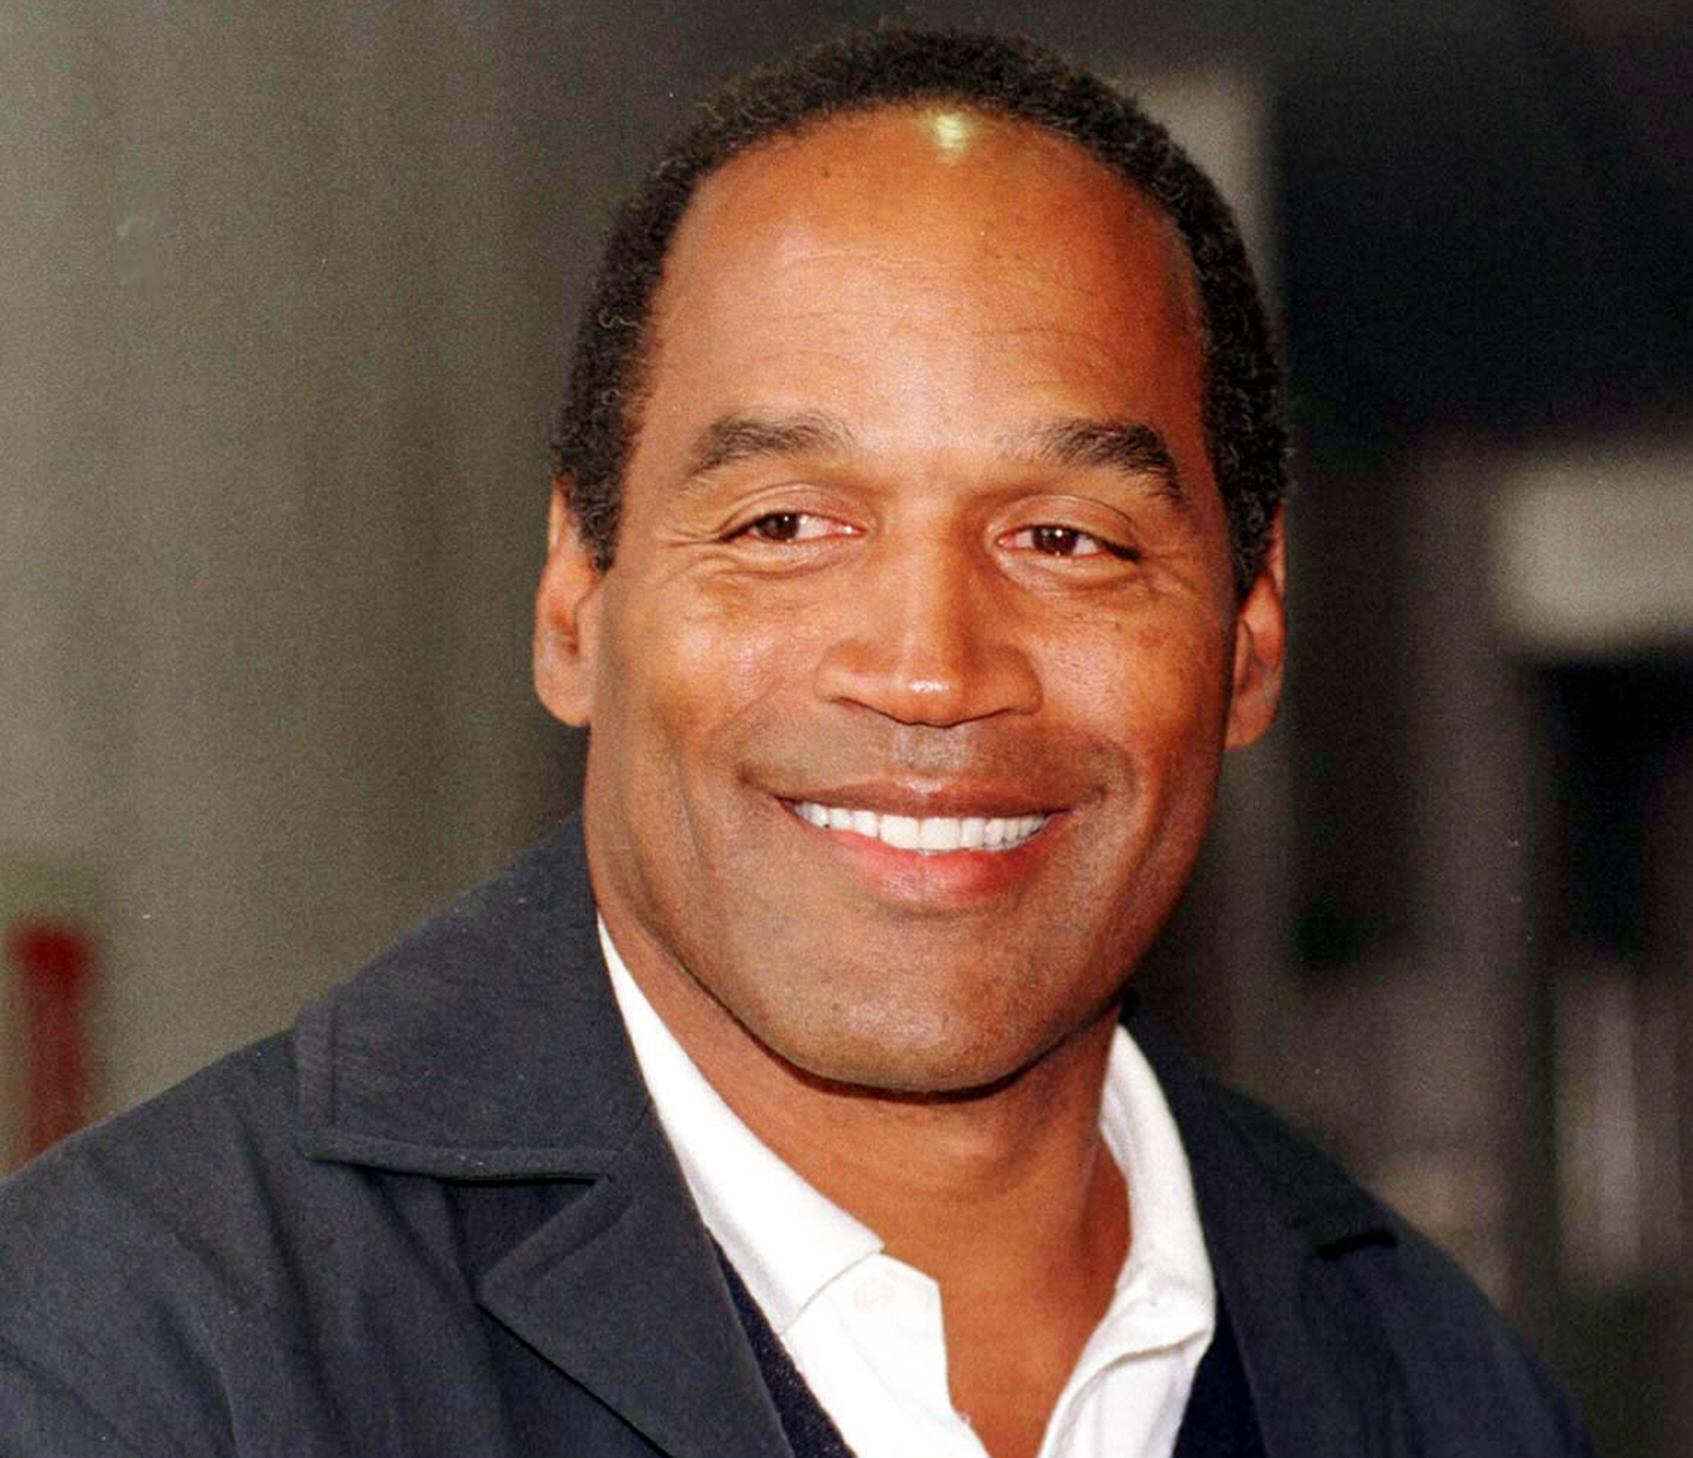 PA 6623631 O.J. Simpson Could Be About To Confess To 1994 Murder